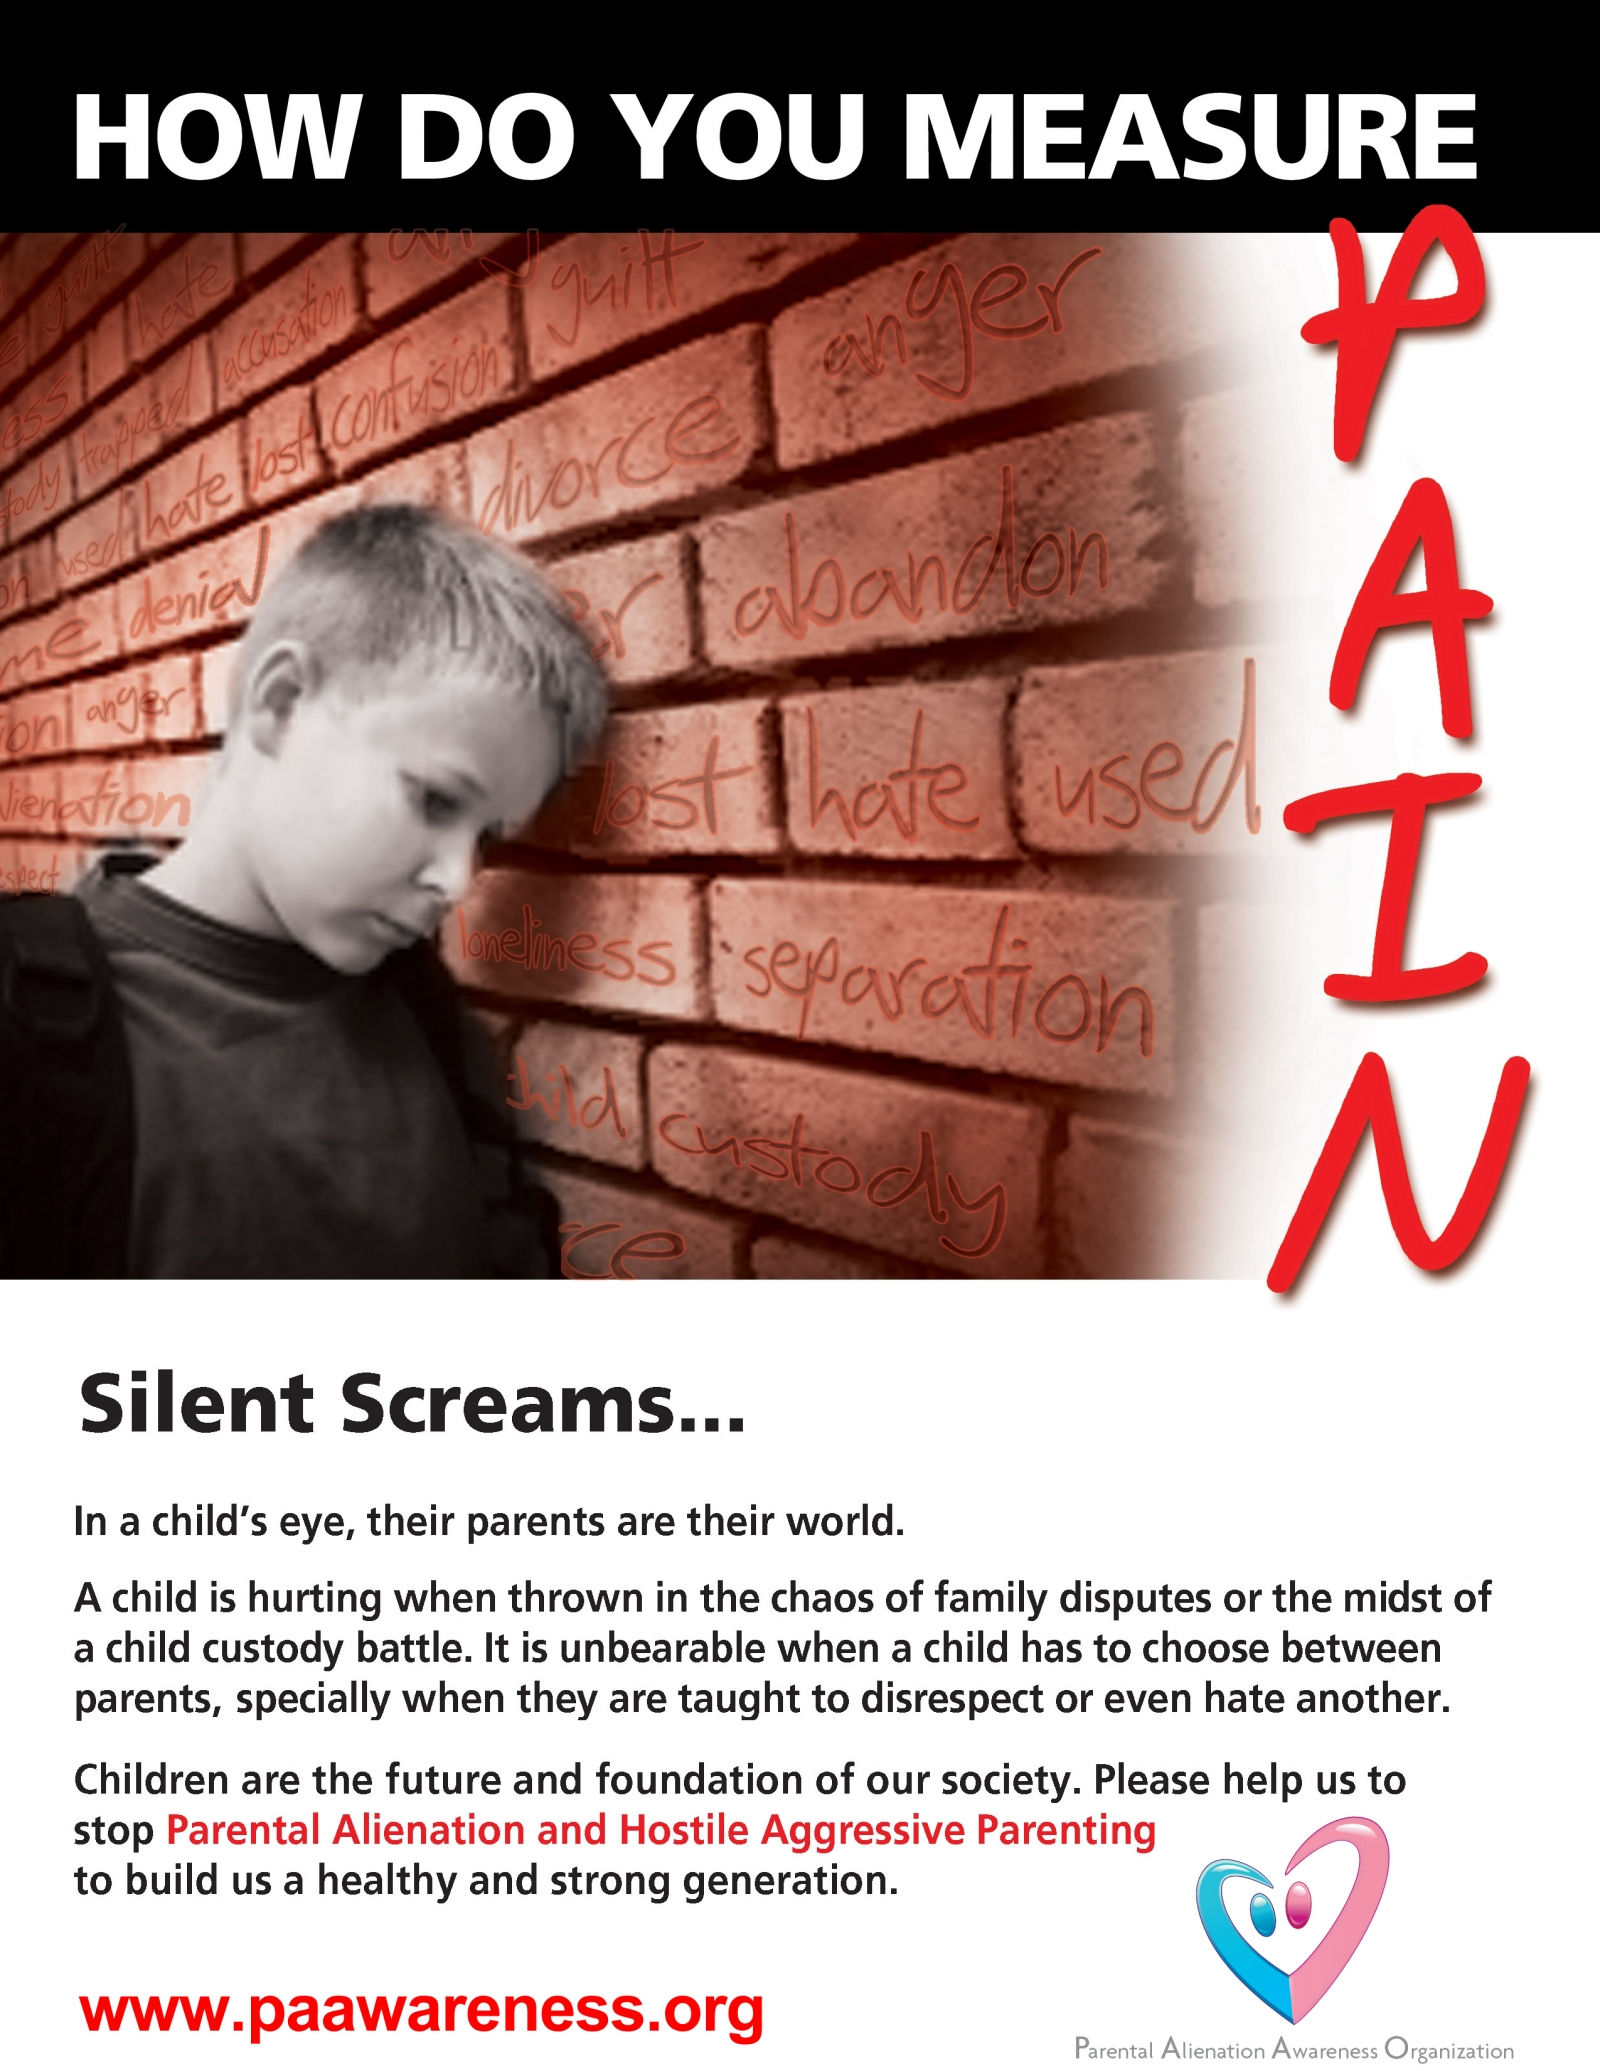 Parental alienation